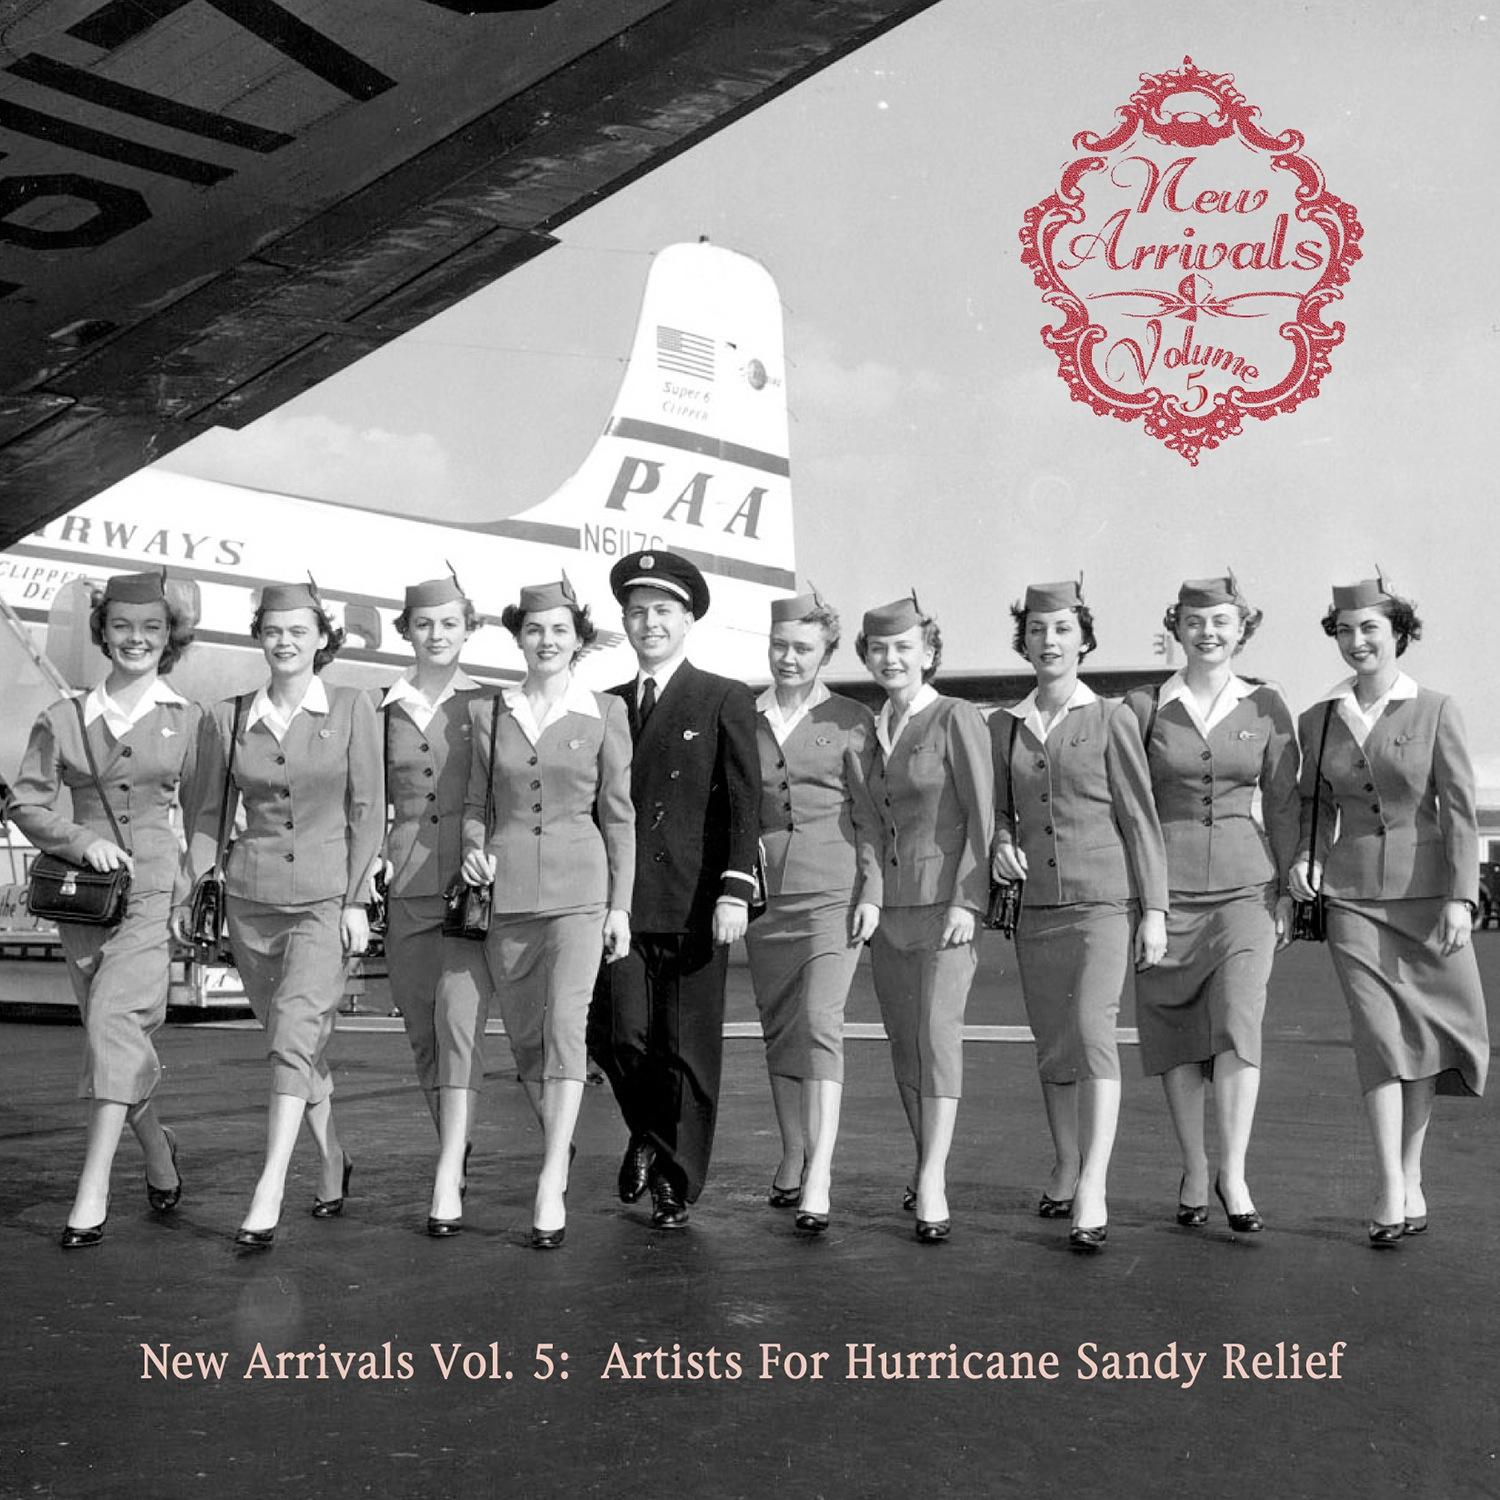 New Arrivals Vol. 5: Artists For Hurricane Sandy Relief